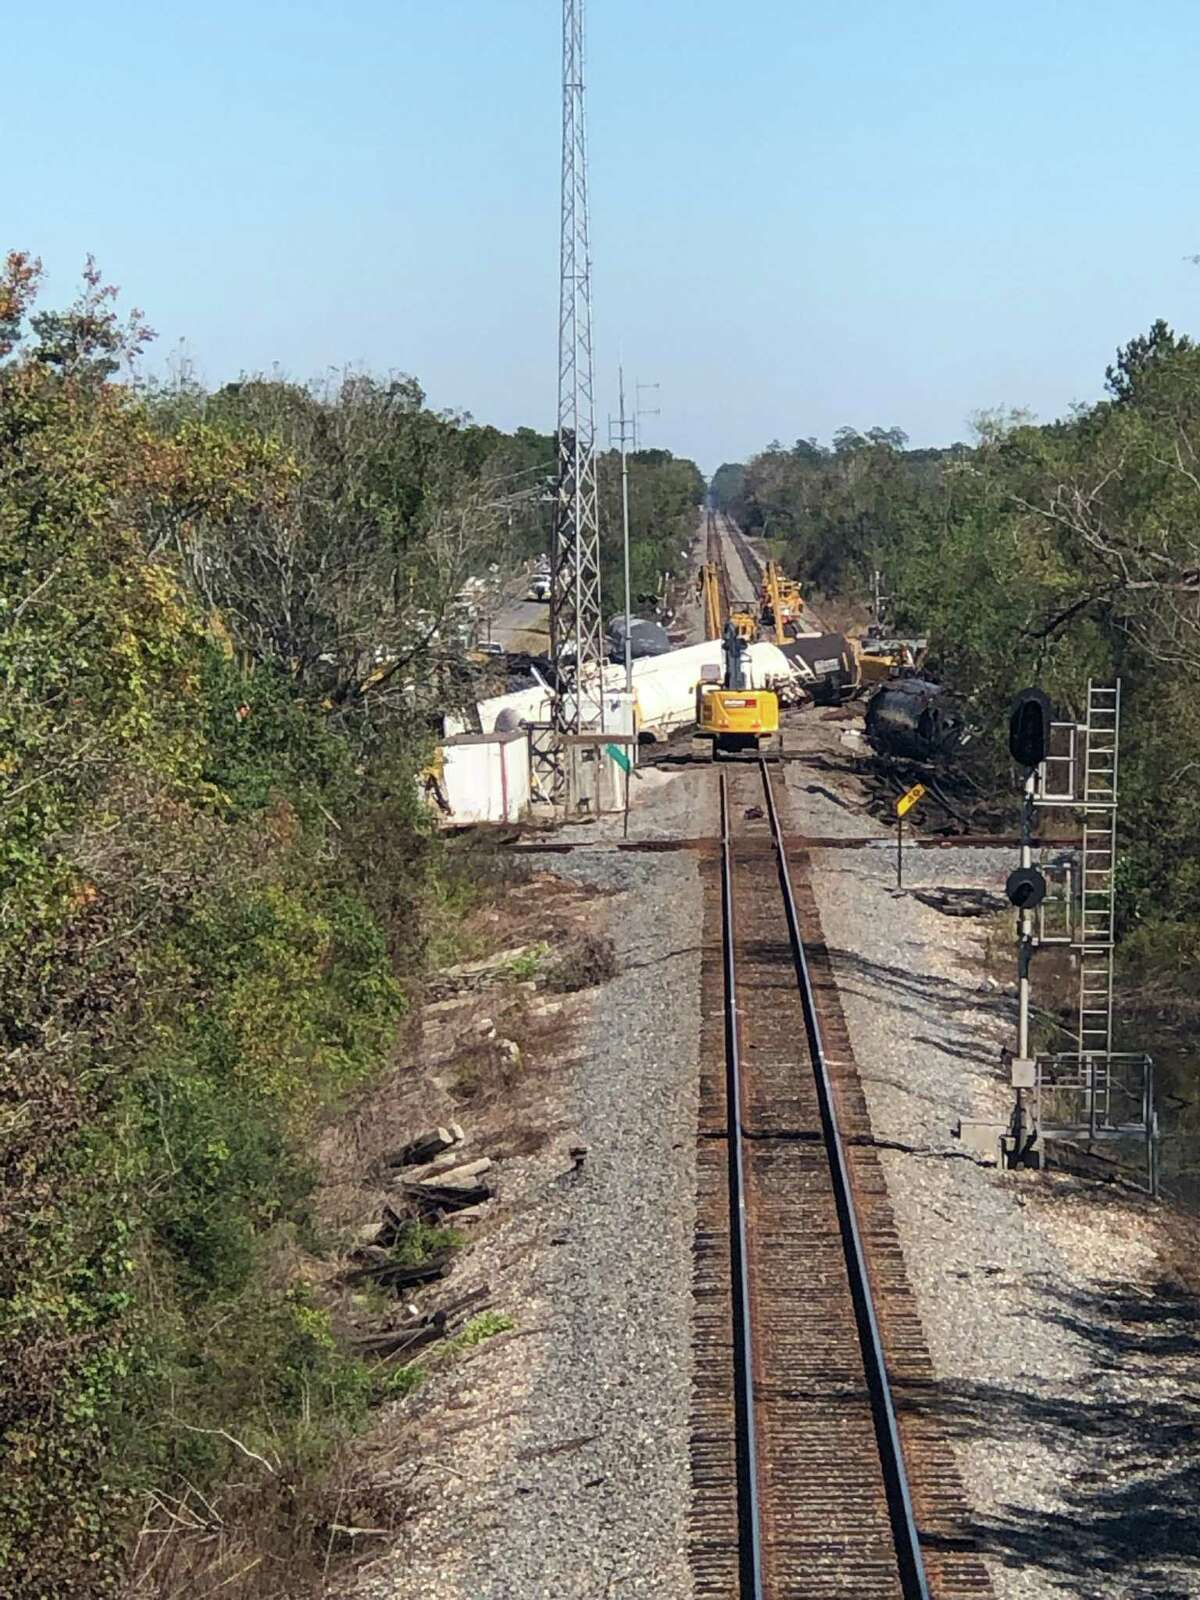 Mauriceville resident Princess Theriot got this photo of the cleanup efforts from an Oct. 29 derailment near her home.